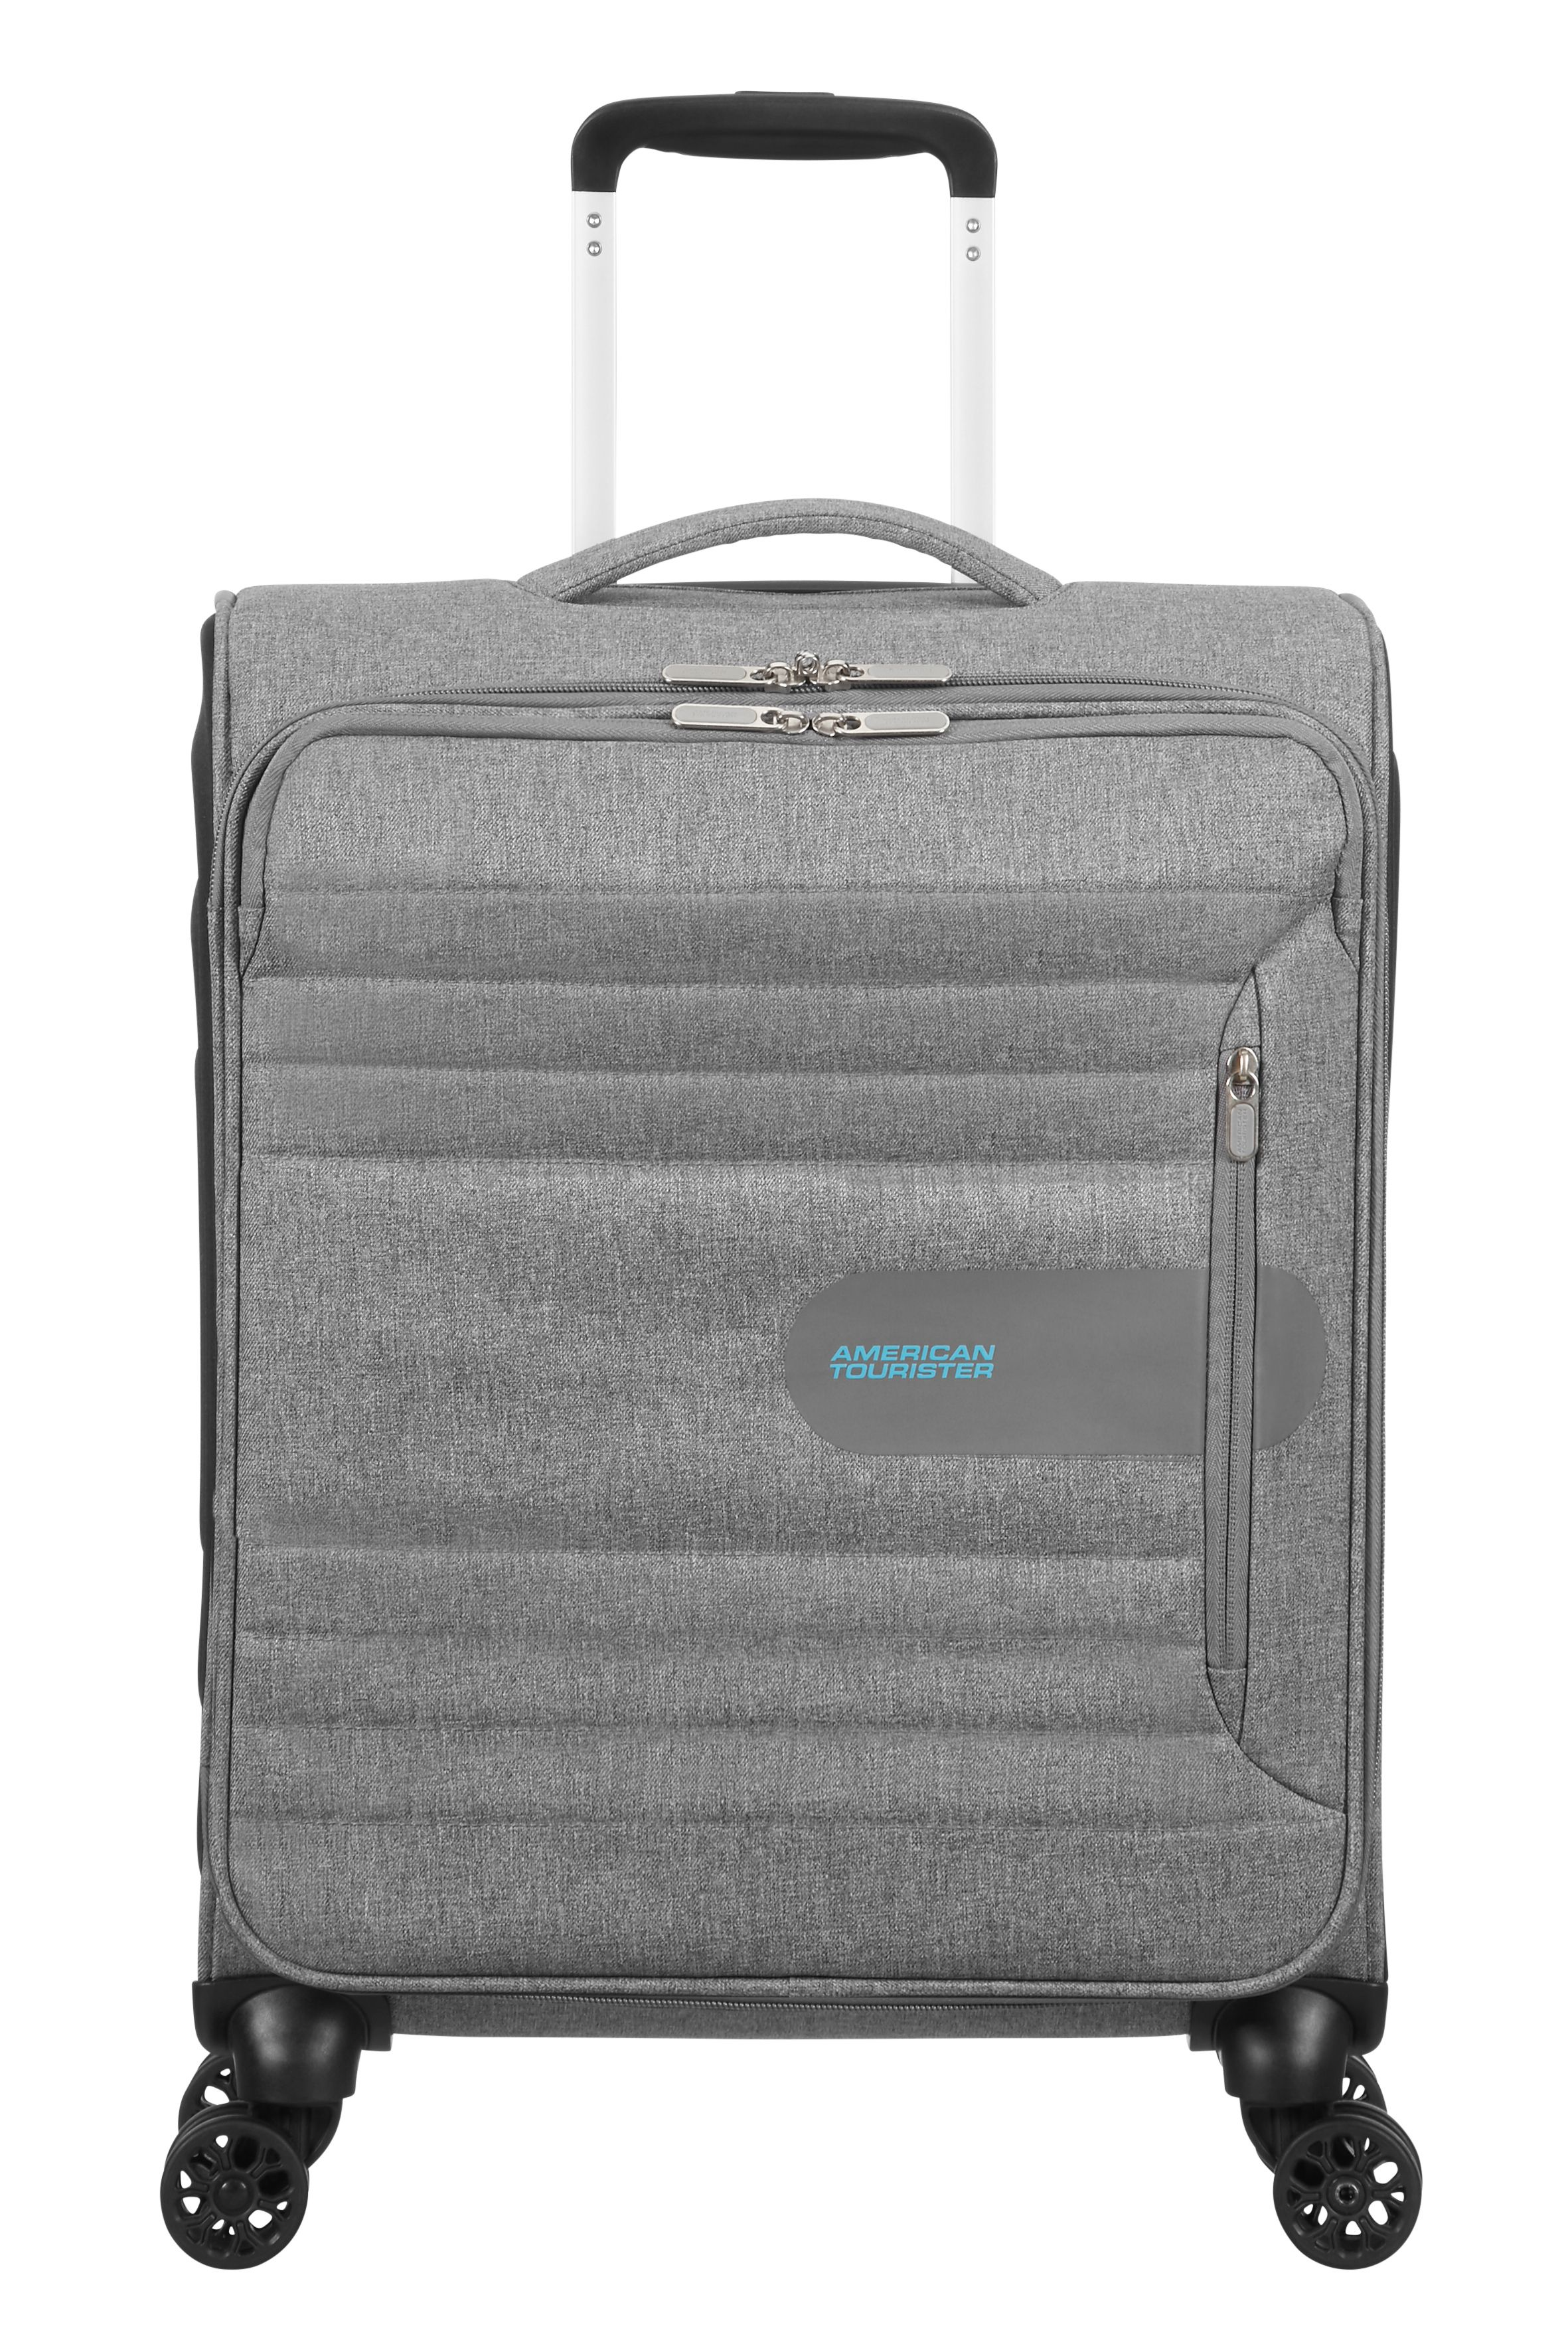 American Tourister Sonic Surfer Metal Grey Cabin Suitcase 55cm, Grey